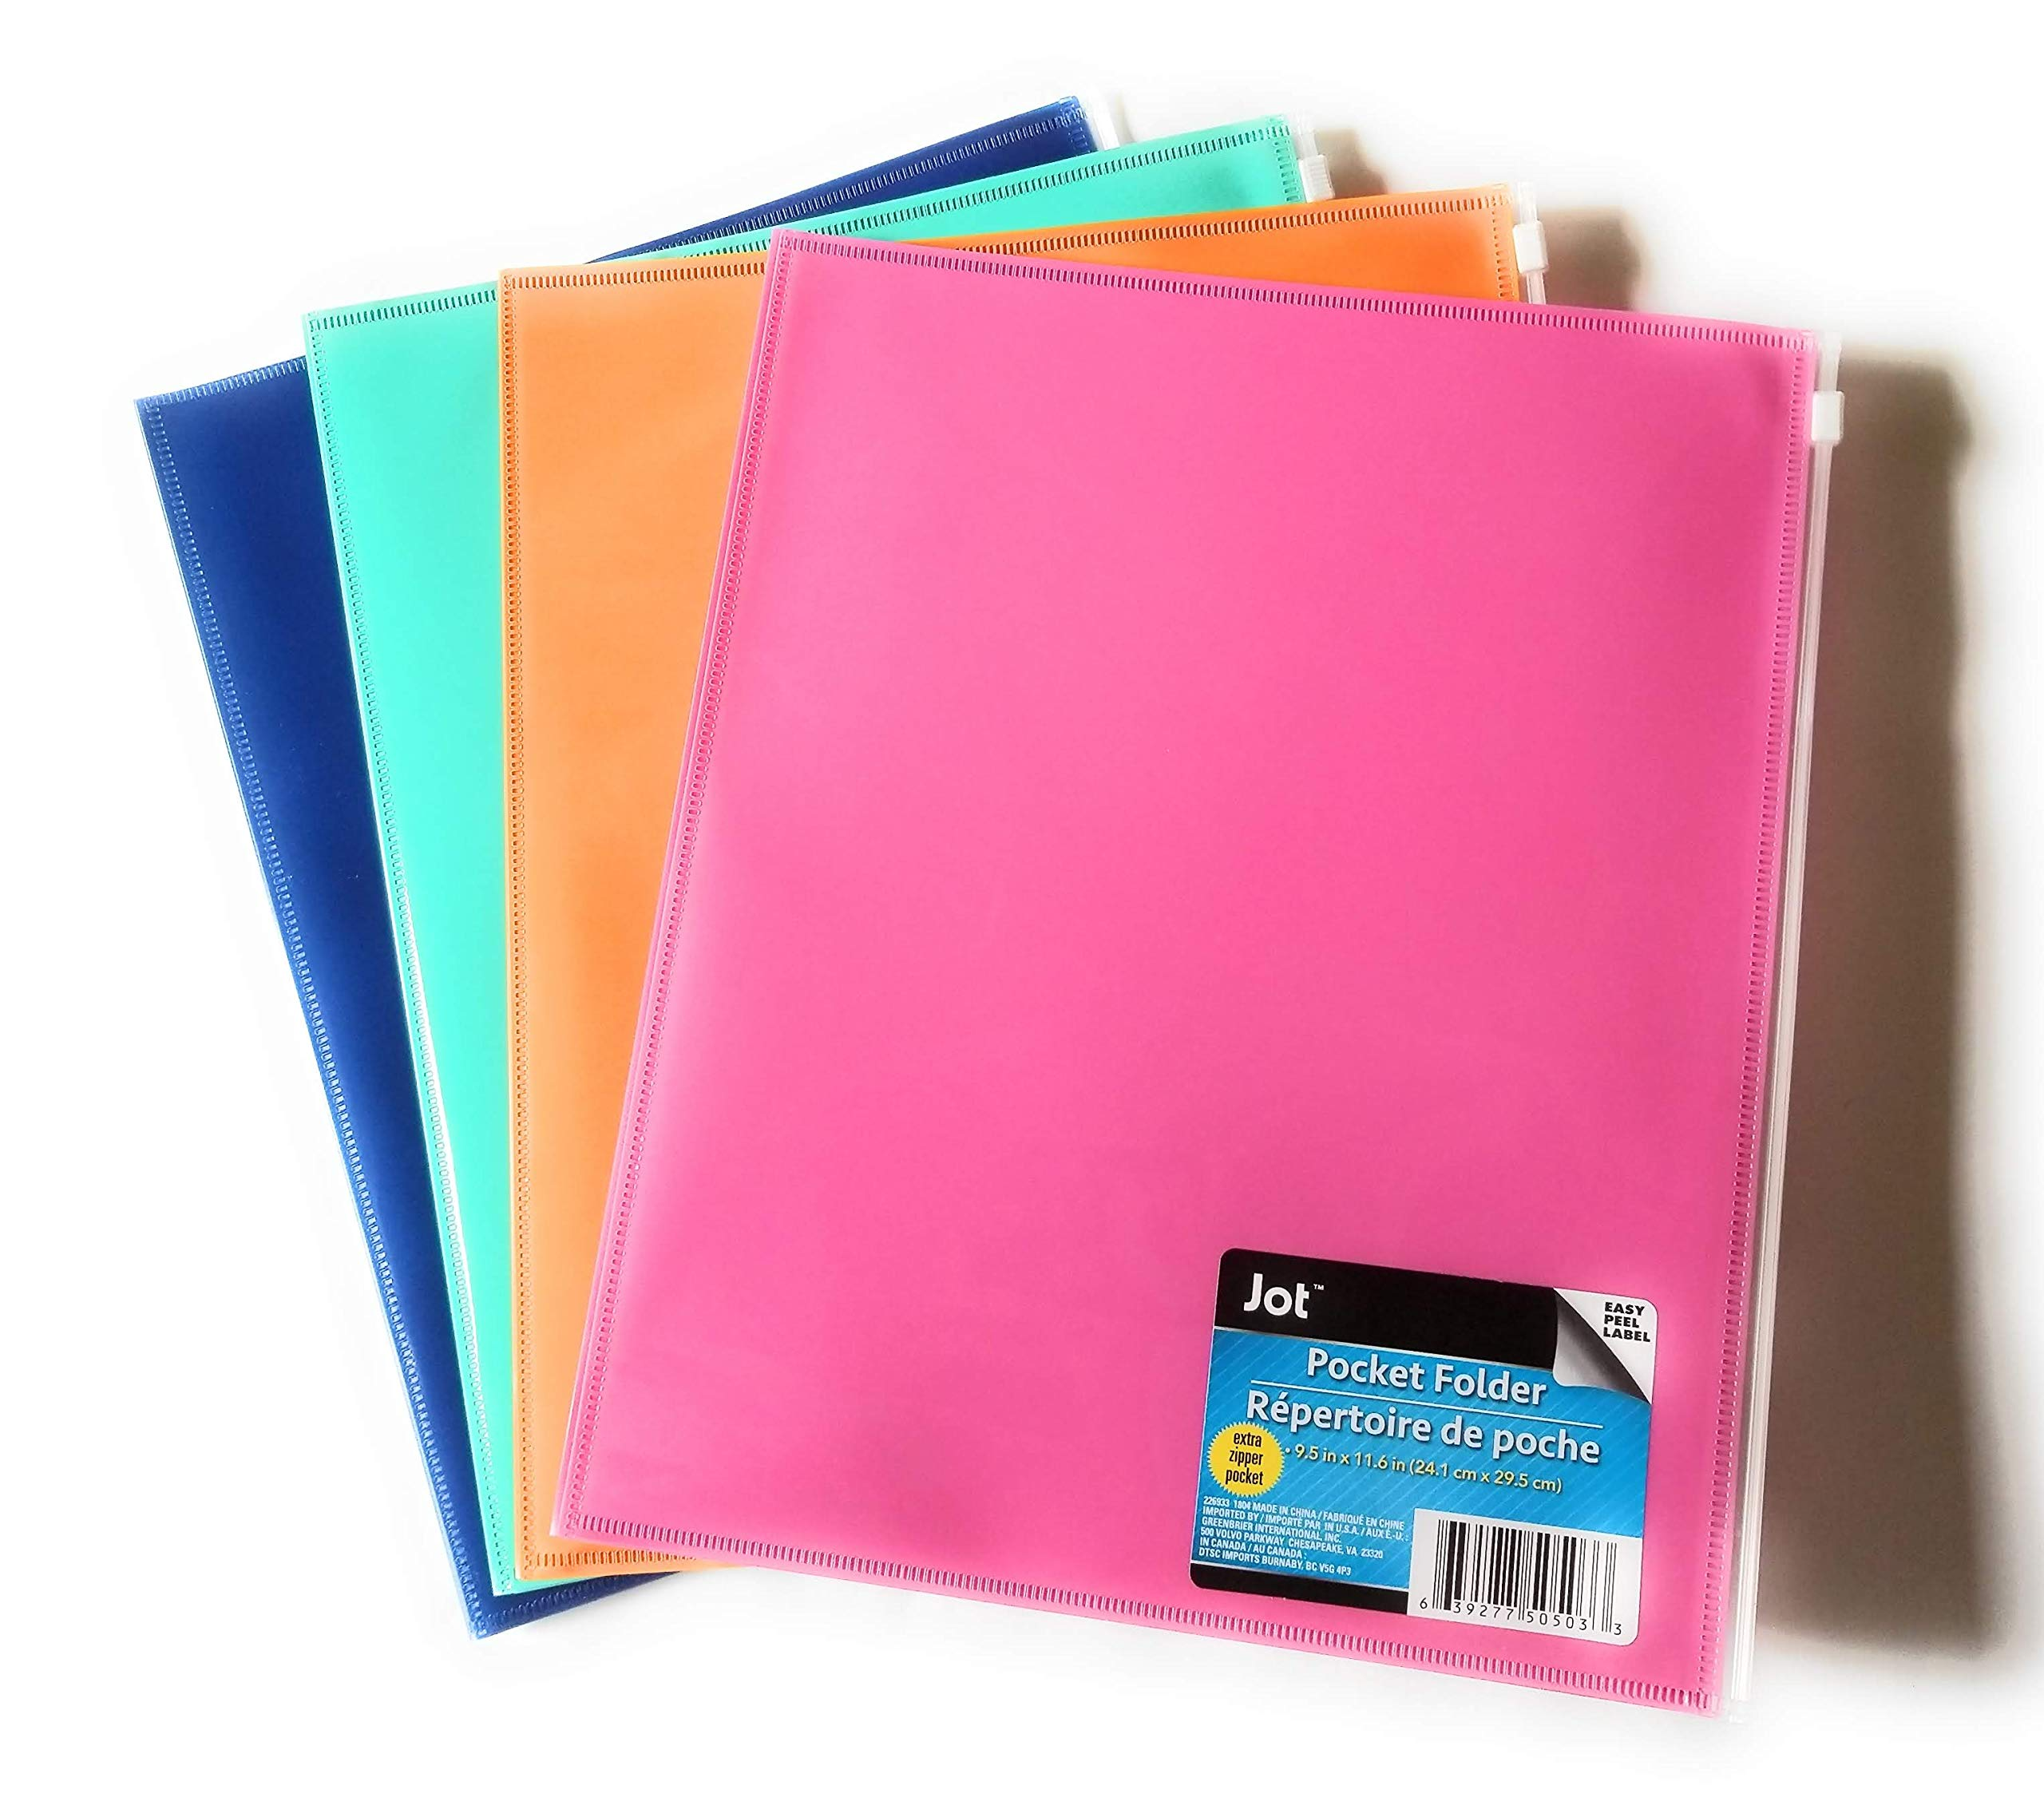 Set of 4 Two-Pocket Plastic Portfolio Folders with Zip Cover Pockets